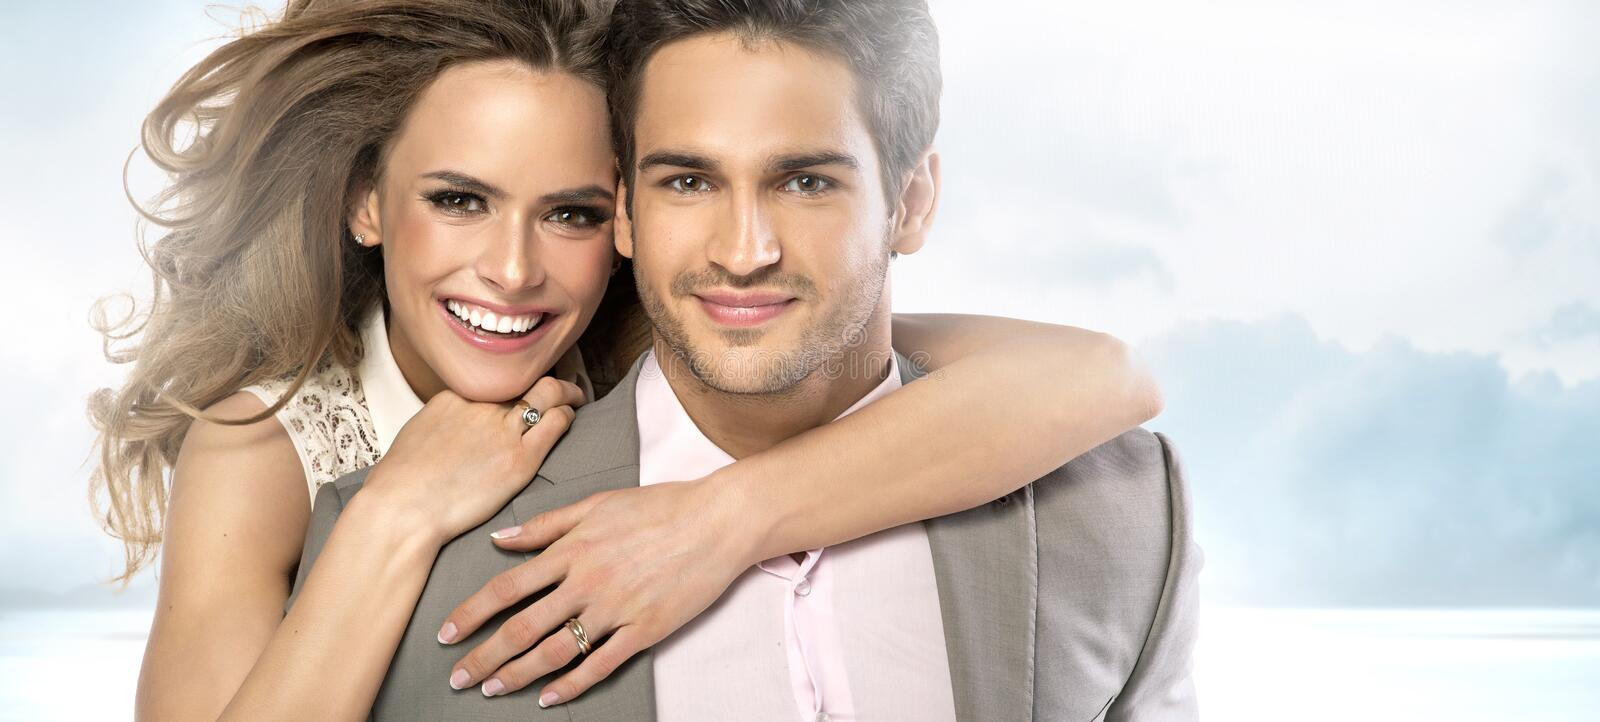 Pleased young guy with his charming girlfriend stock images